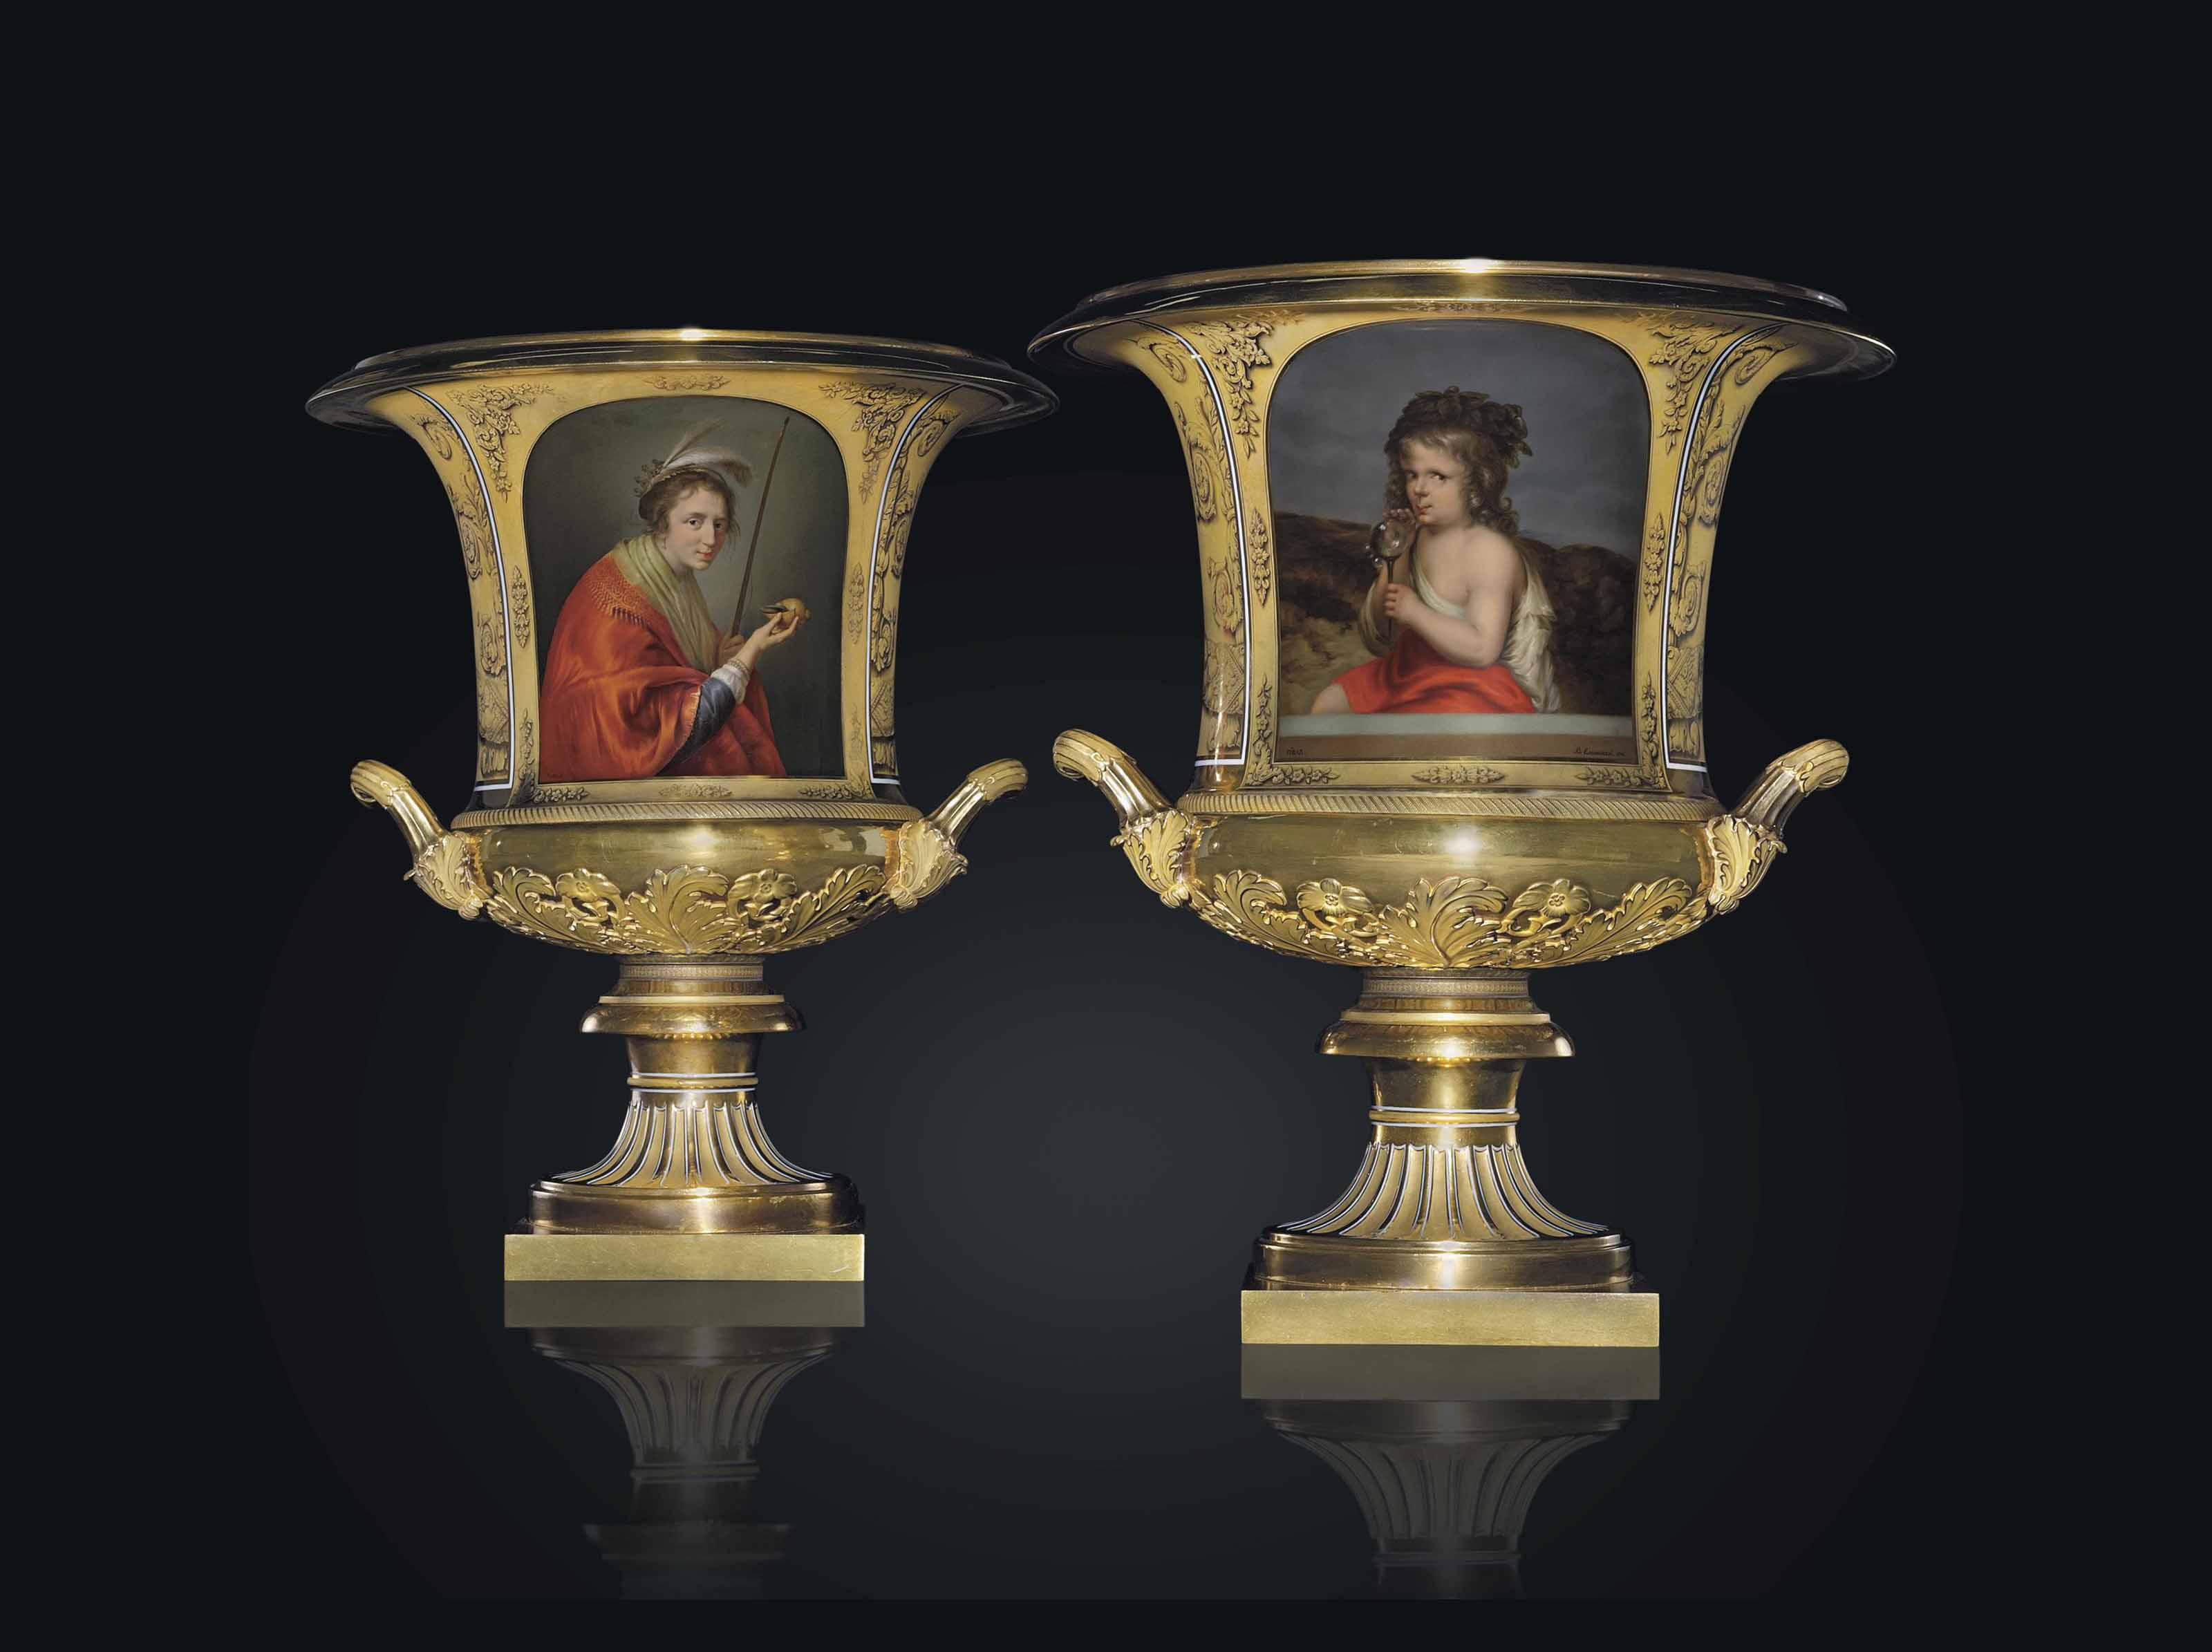 A PAIR OF RARE AND LARGE TWO-HANDLED PORCELAIN VASES